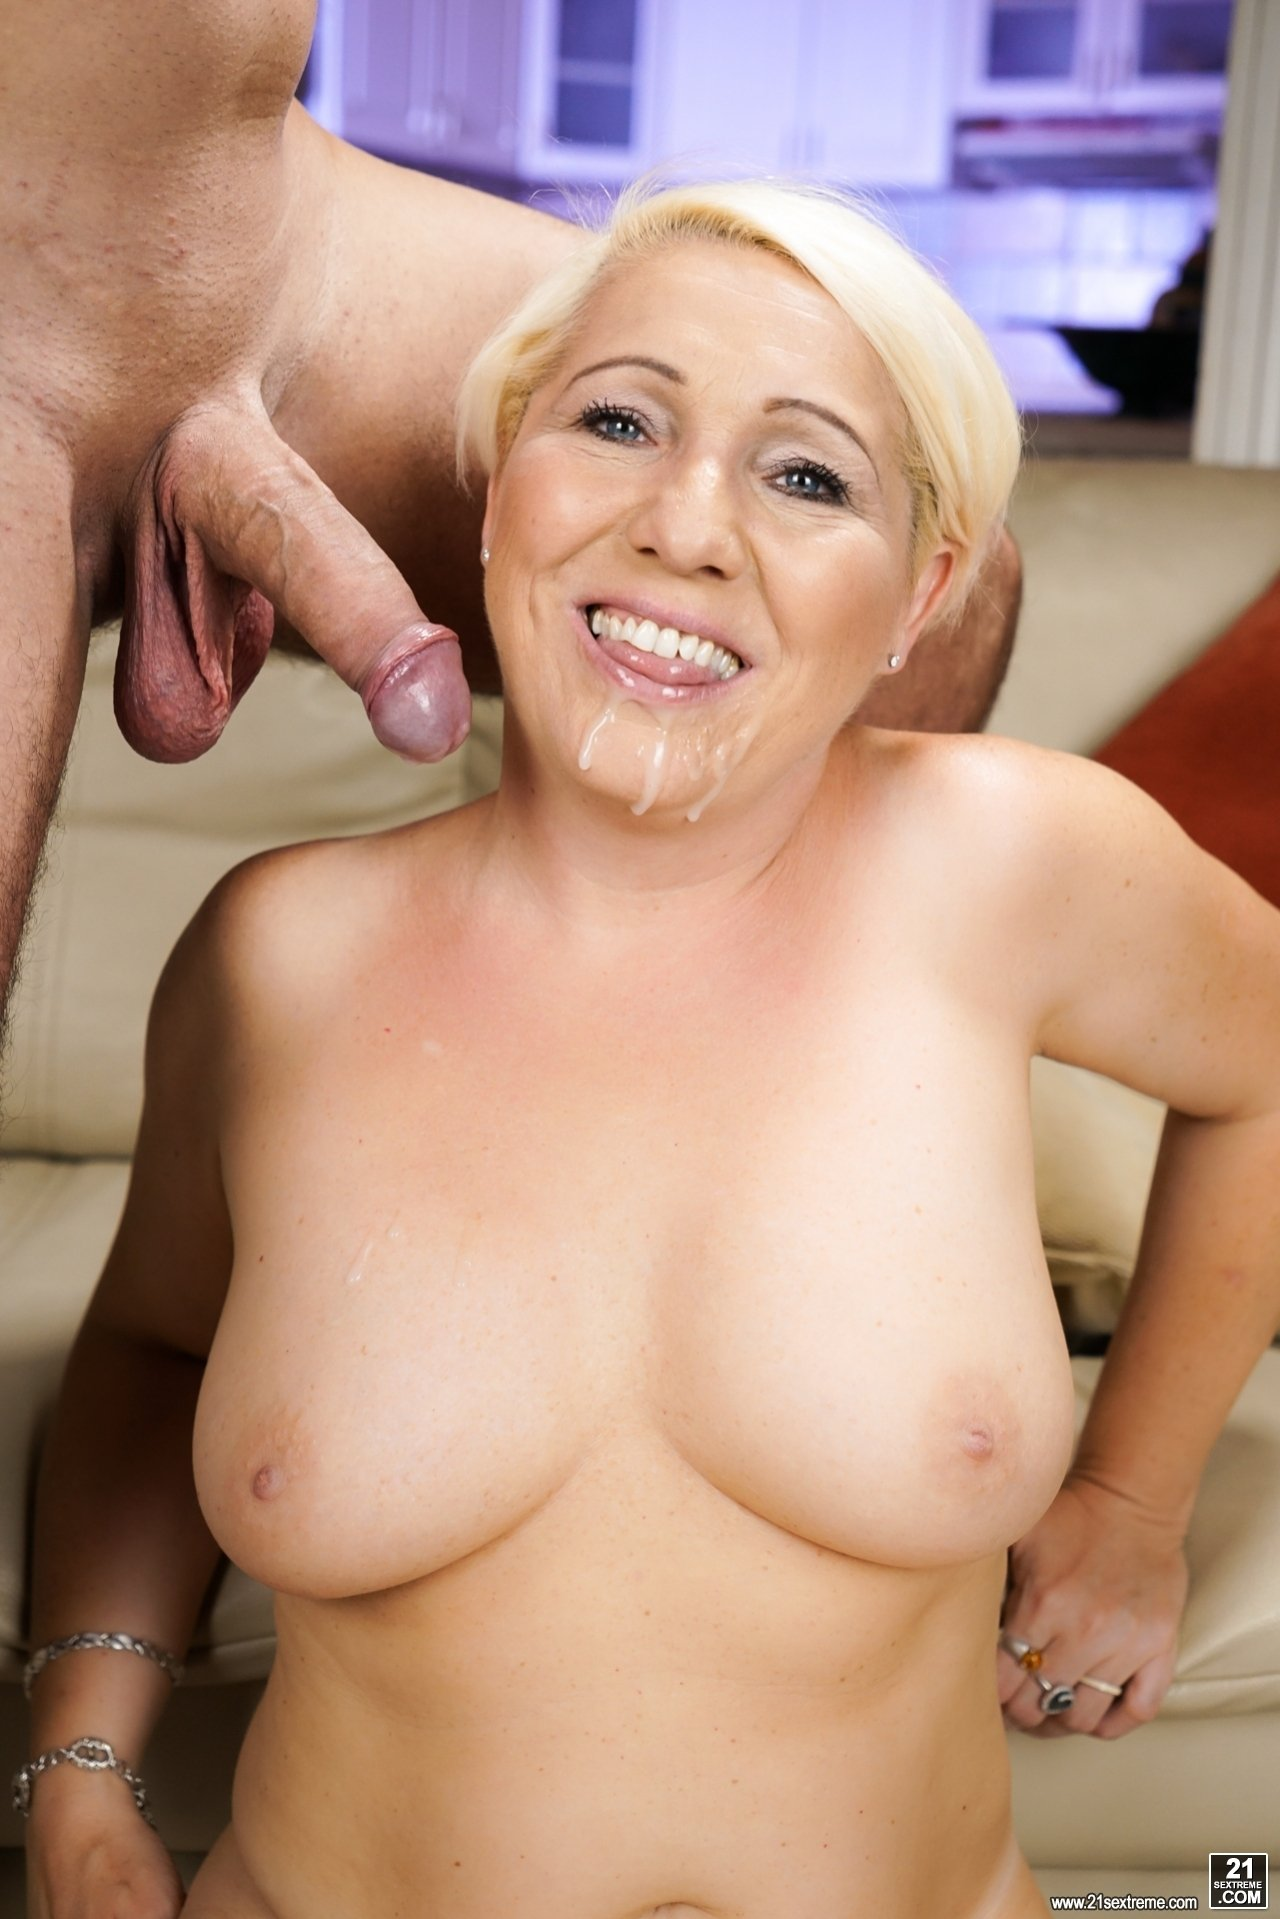 Gorgeous grannies nude #1